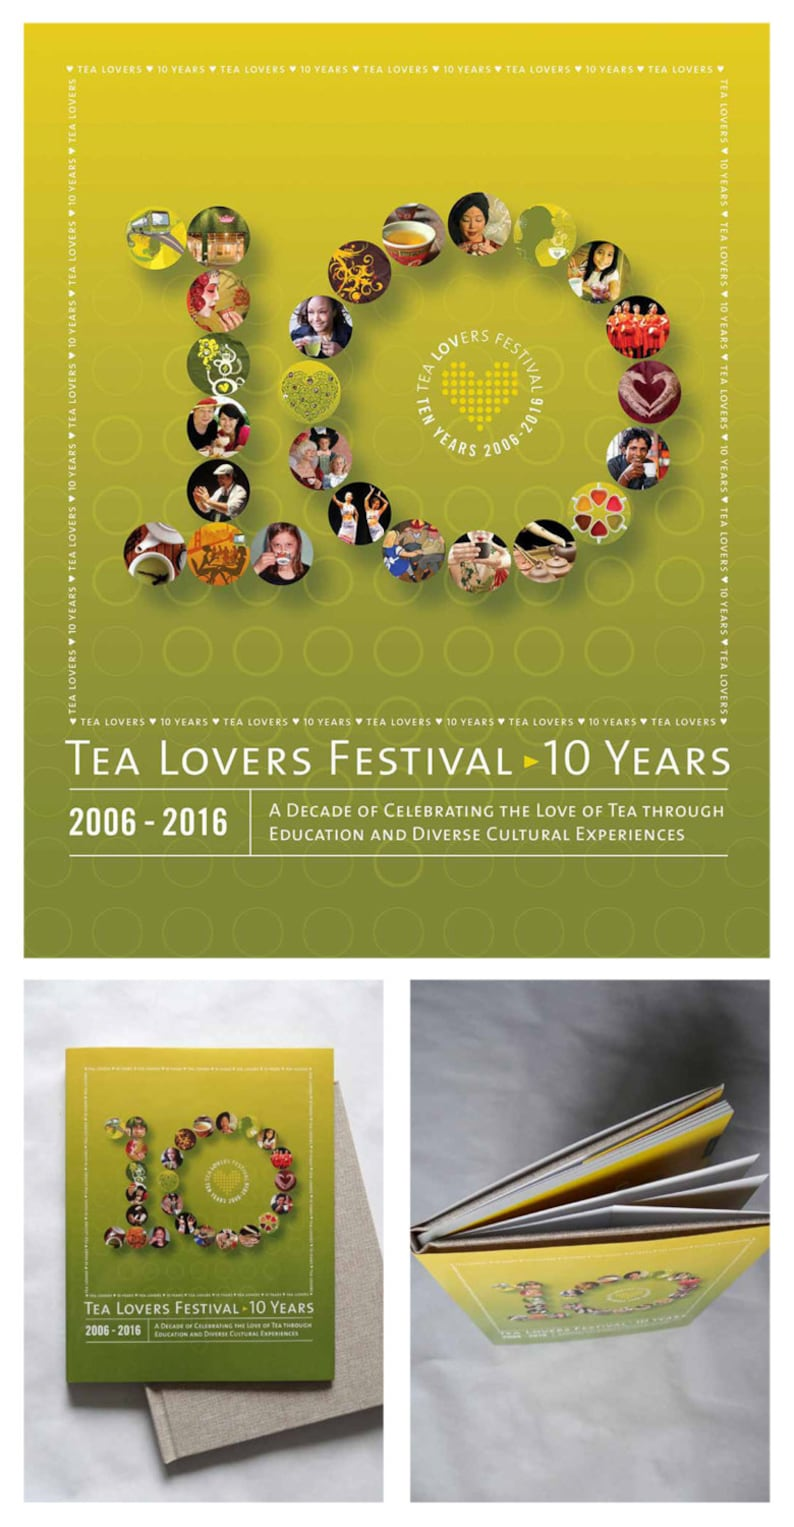 Tea Lovers Festival: 10 Years  Limited-Edition Version image 0